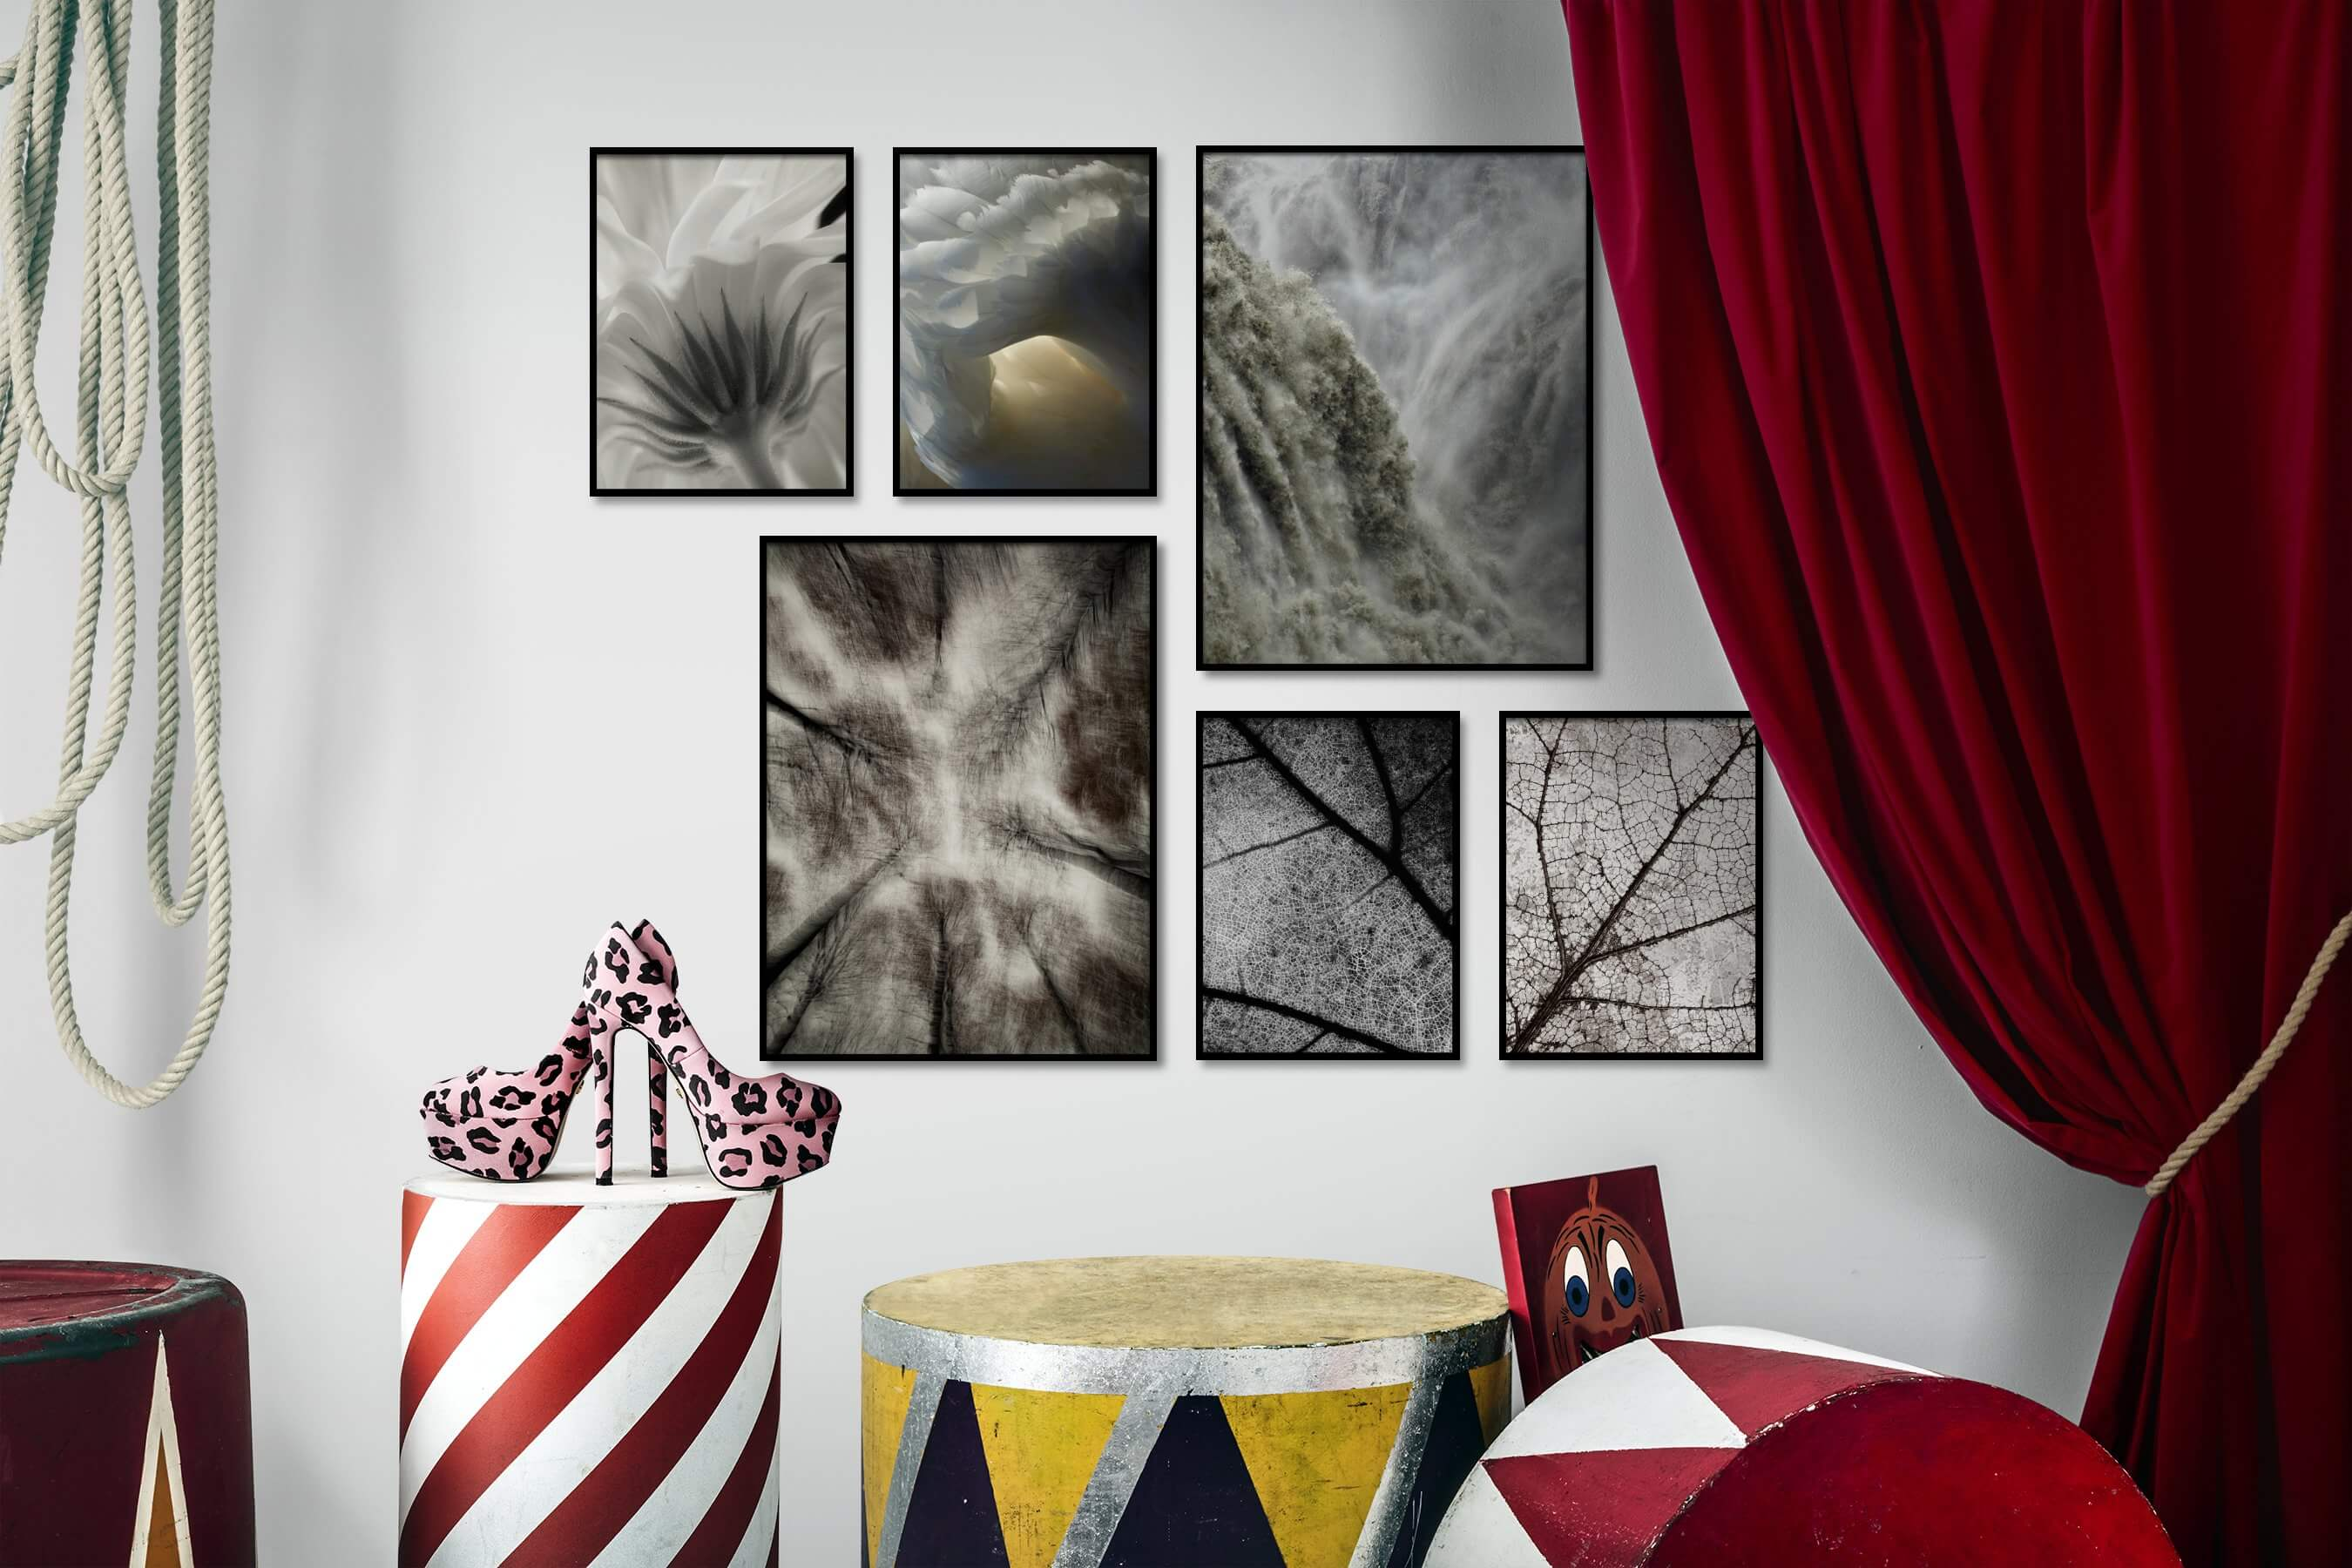 Gallery wall idea with six framed pictures arranged on a wall depicting For the Moderate, Flowers & Plants, Animals, Mindfulness, and Nature